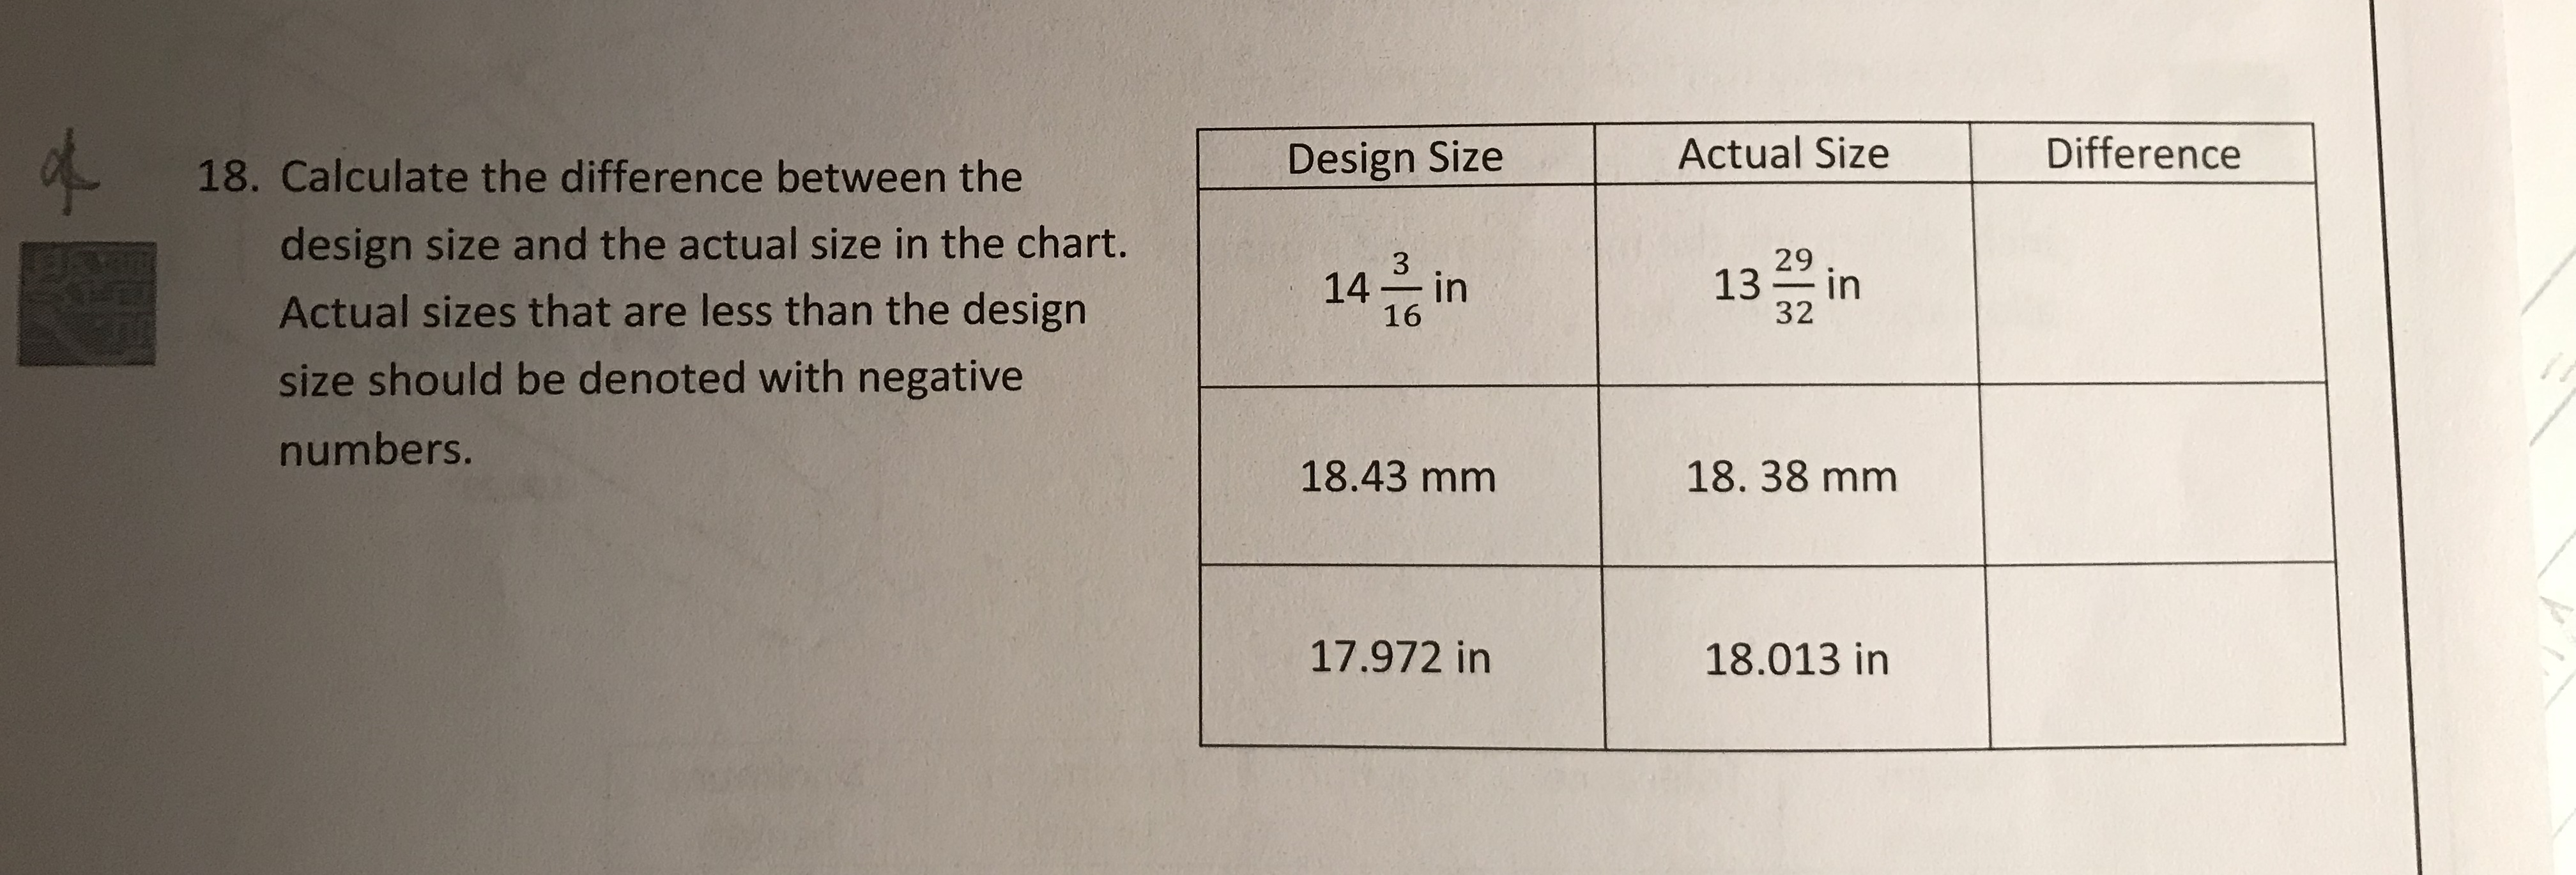 18. Calculate the difference between the Design Size Actual Size Difference design size and the actual size in the chart. Actual sizes that are less than the design size should be denoted with negative numbers. 14 in 16 29 32 18.43 mm 18. 38 mm 17.972 in 18.013 in